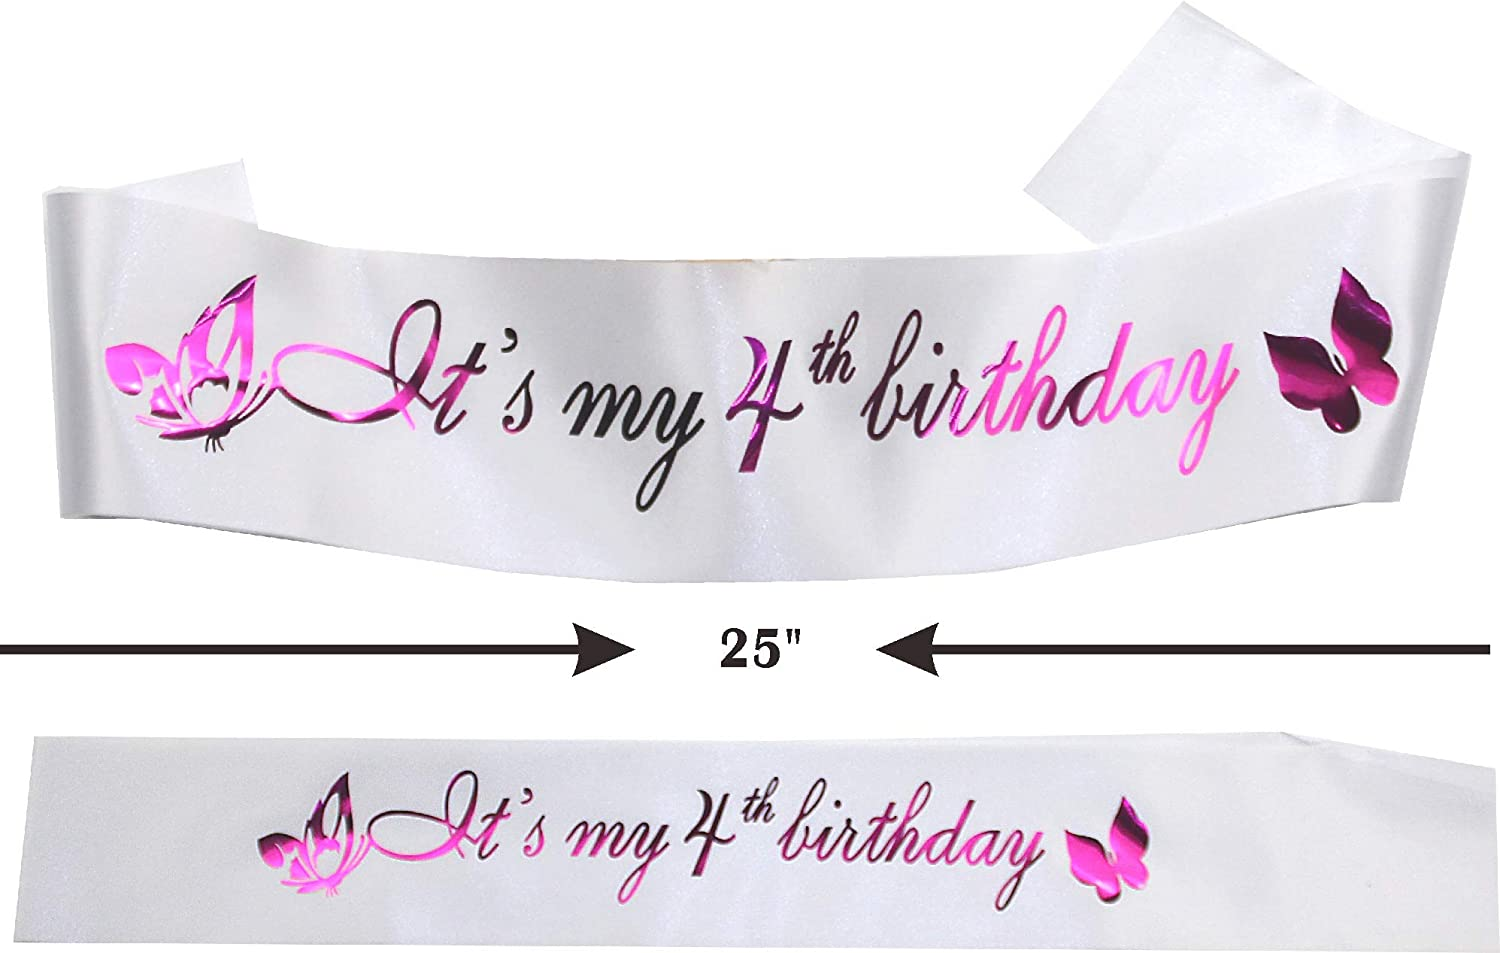 4th Birthday Decorations Party Supplies 4th Birthday Party Supplies and Decorations 4th White Satin Sash It/'s my 4th Birthday 4th Birthday Gifts Happy 4th Birth Purple 4th Birthday Tiara and Sash